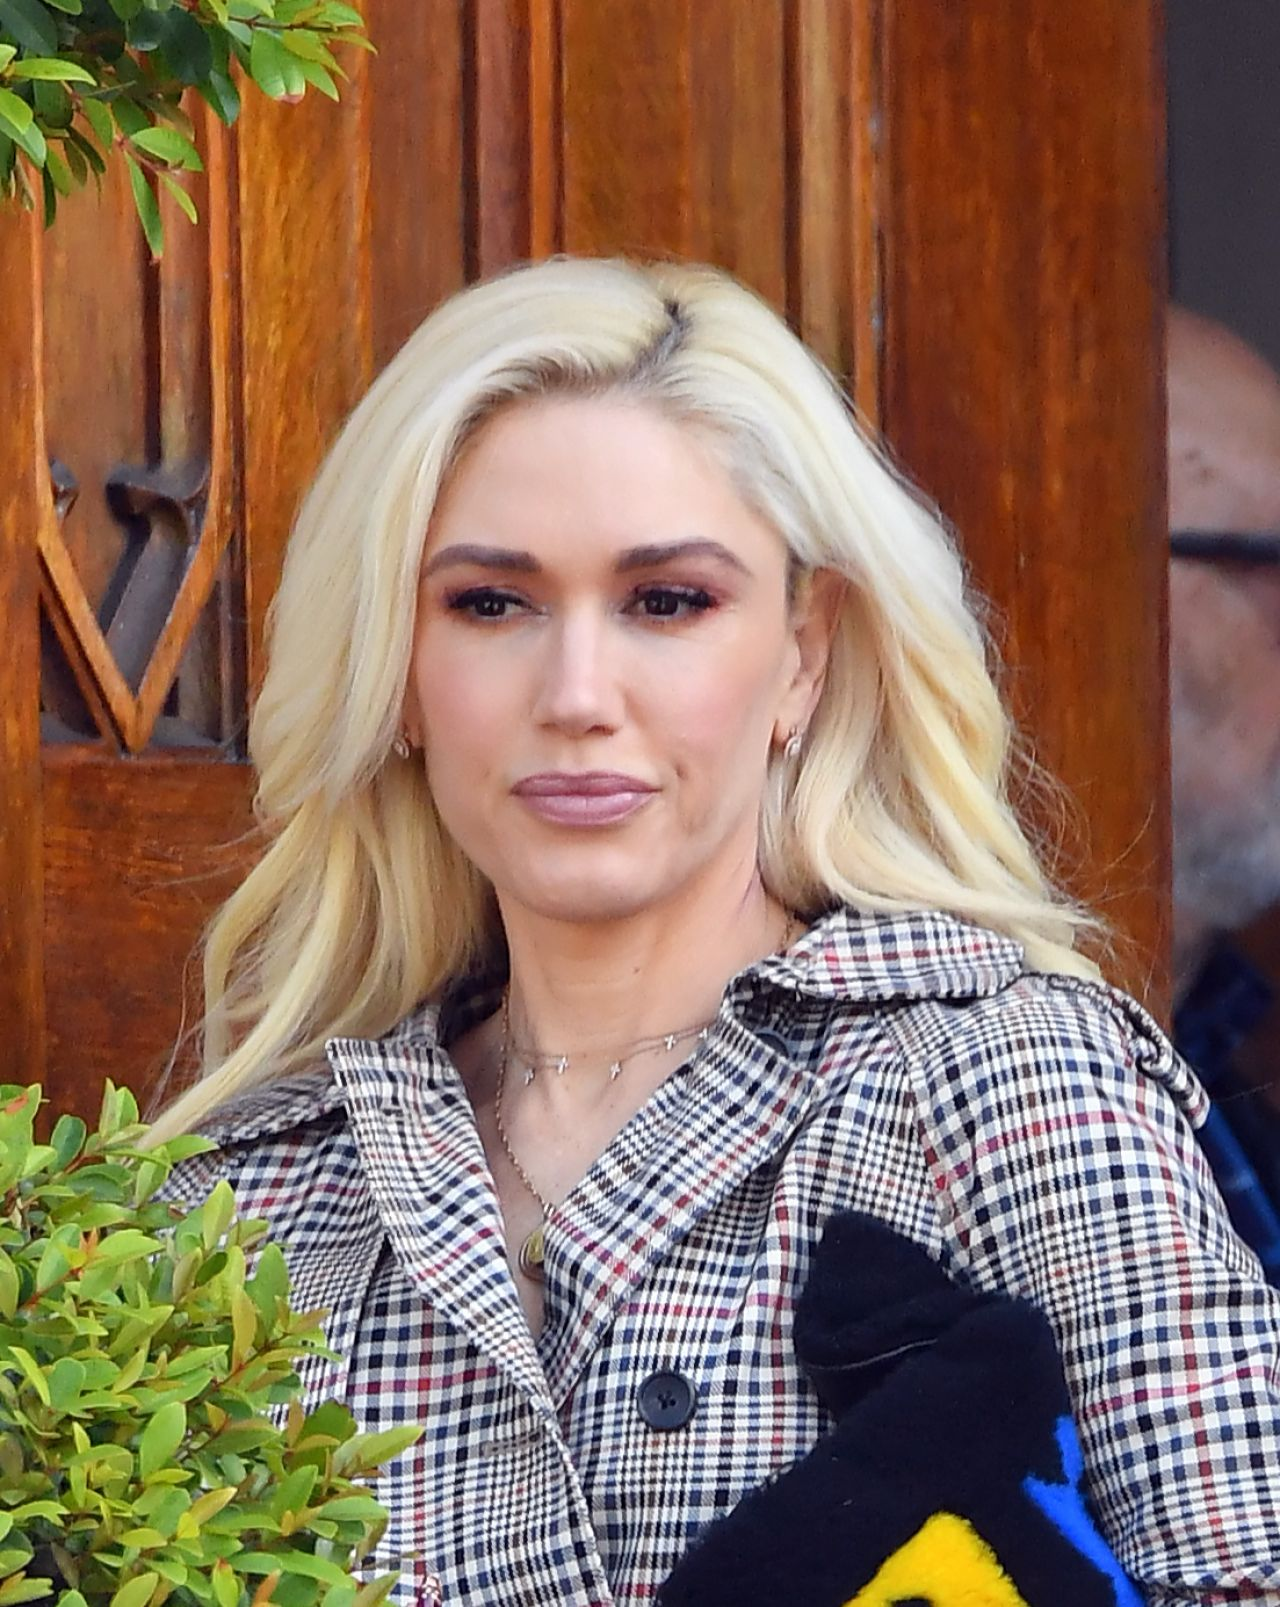 'What's Wrong With Gwen Stefani's Face?' Social Media ...